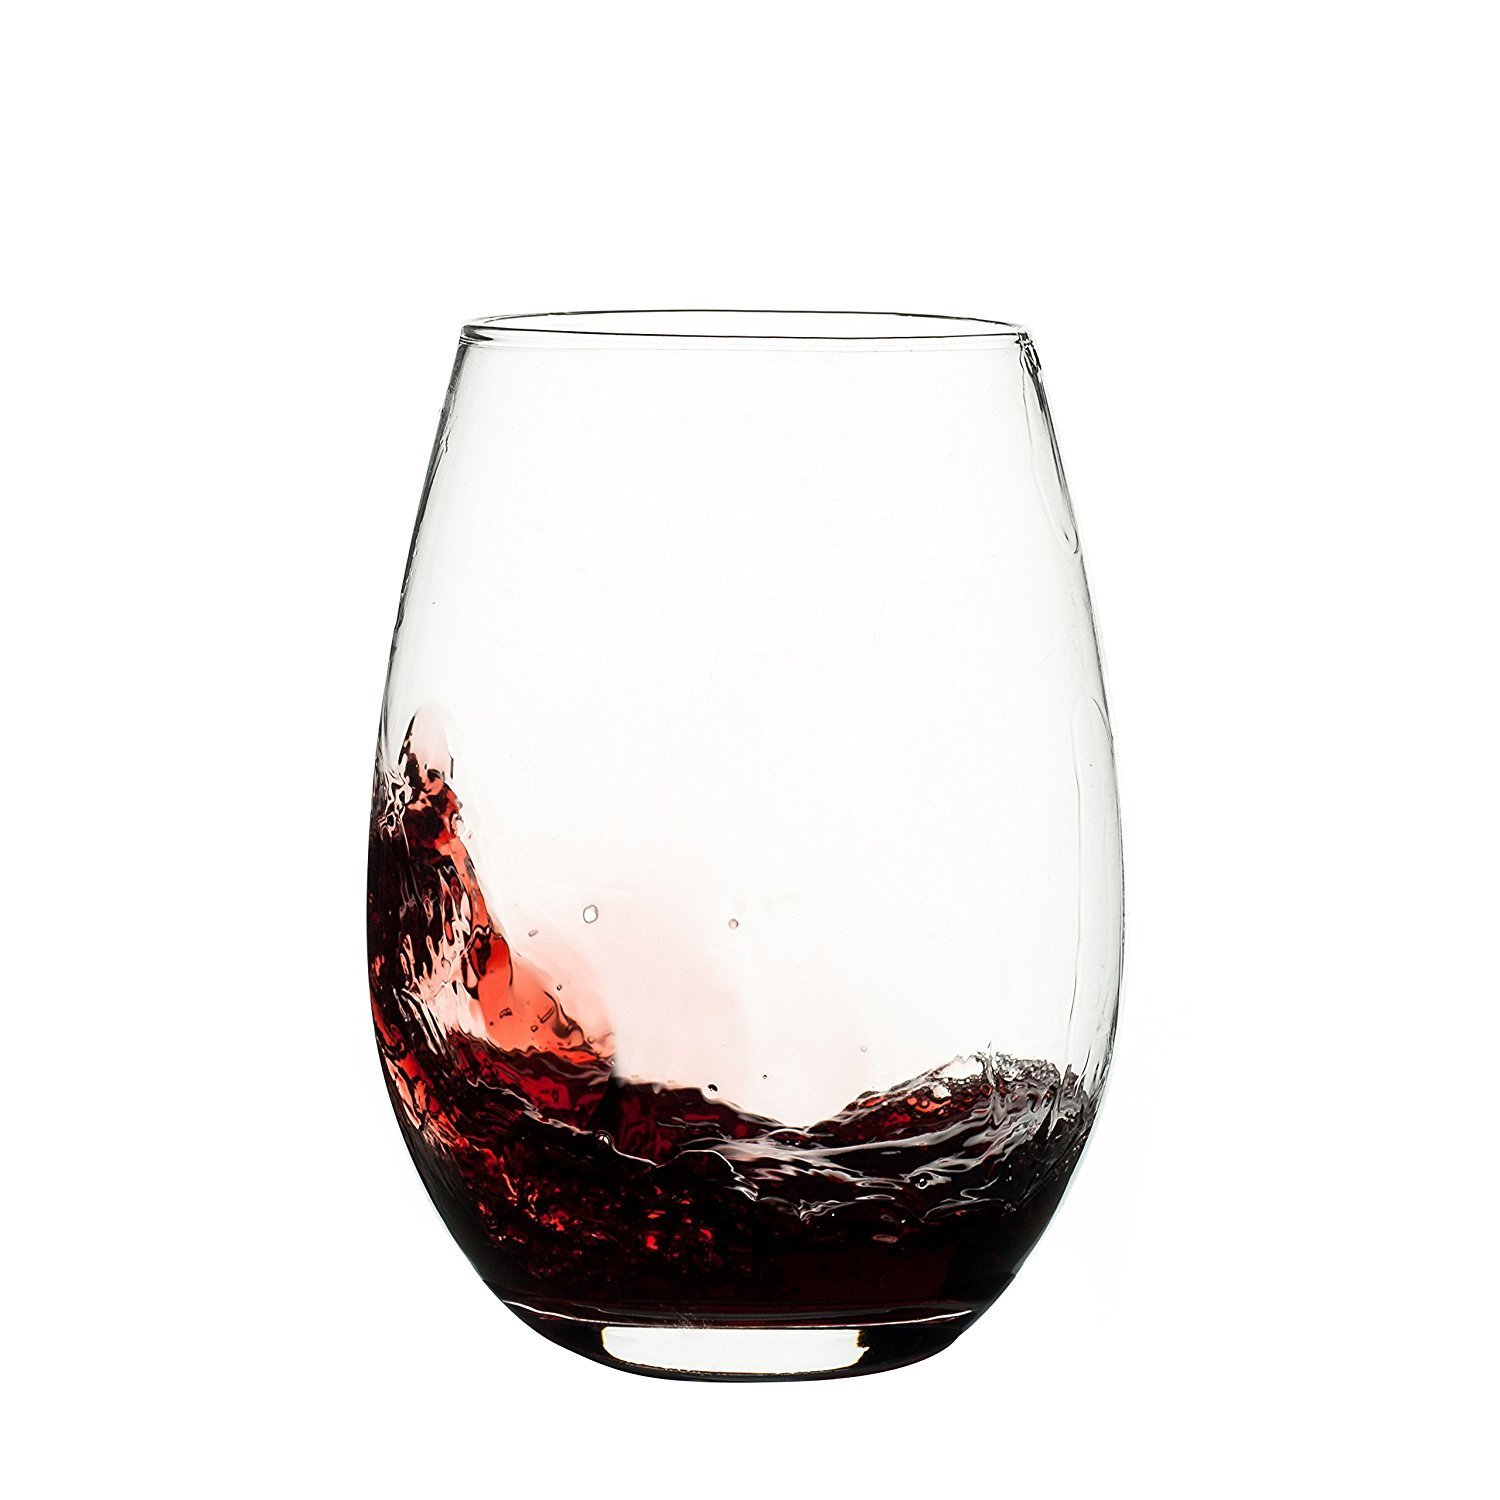 Franmara unbreakable plastic stemless wine glass 20 oz for Thin stem wine glasses